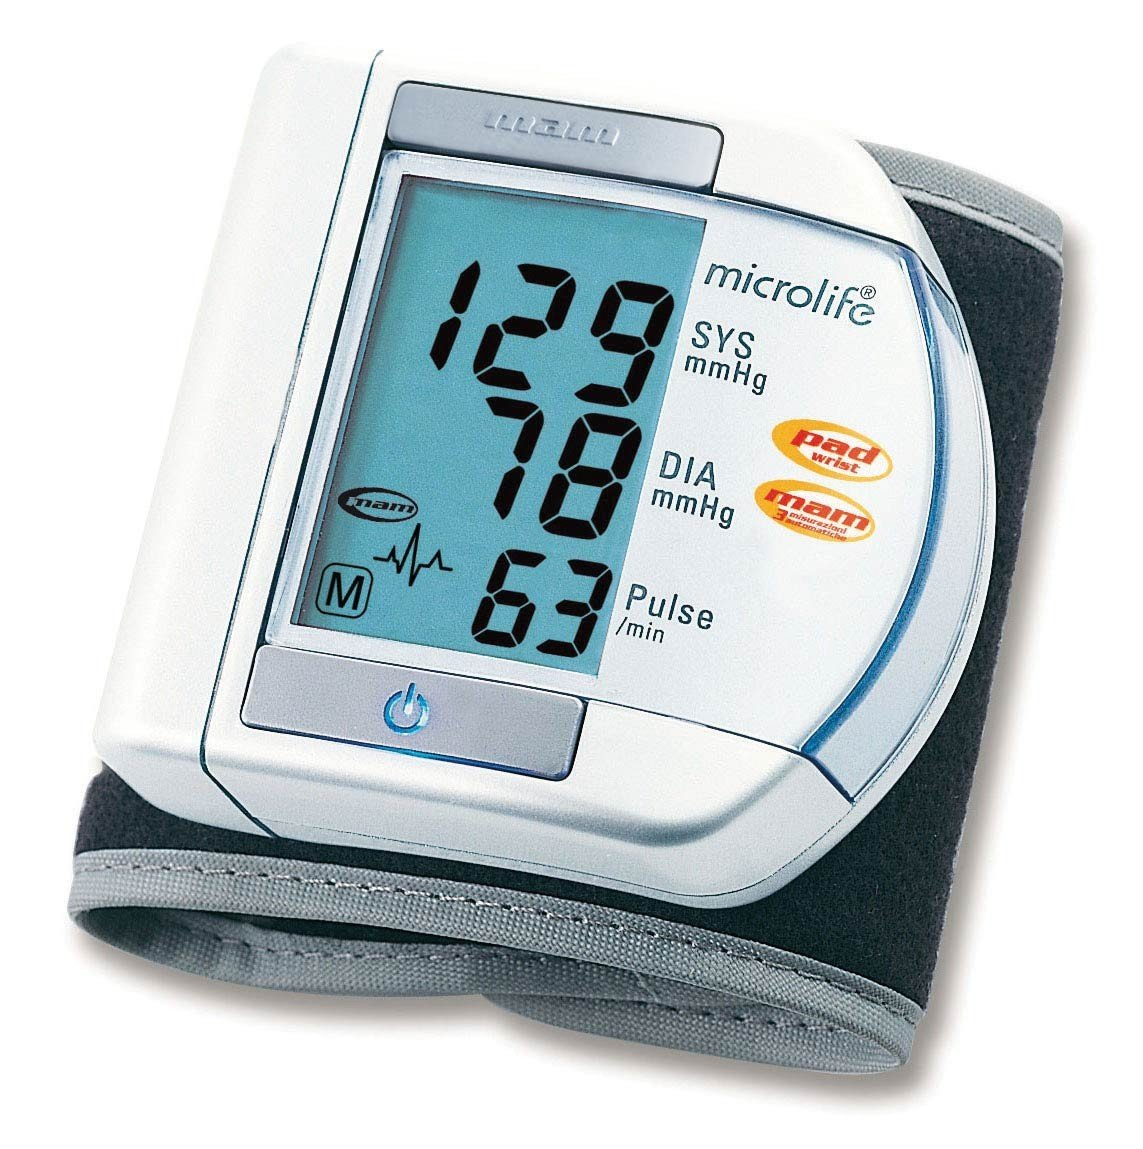 Amazon.com: Microlife Bp Automatic Wrist Blood Pressure Monitor: Health & Personal Care